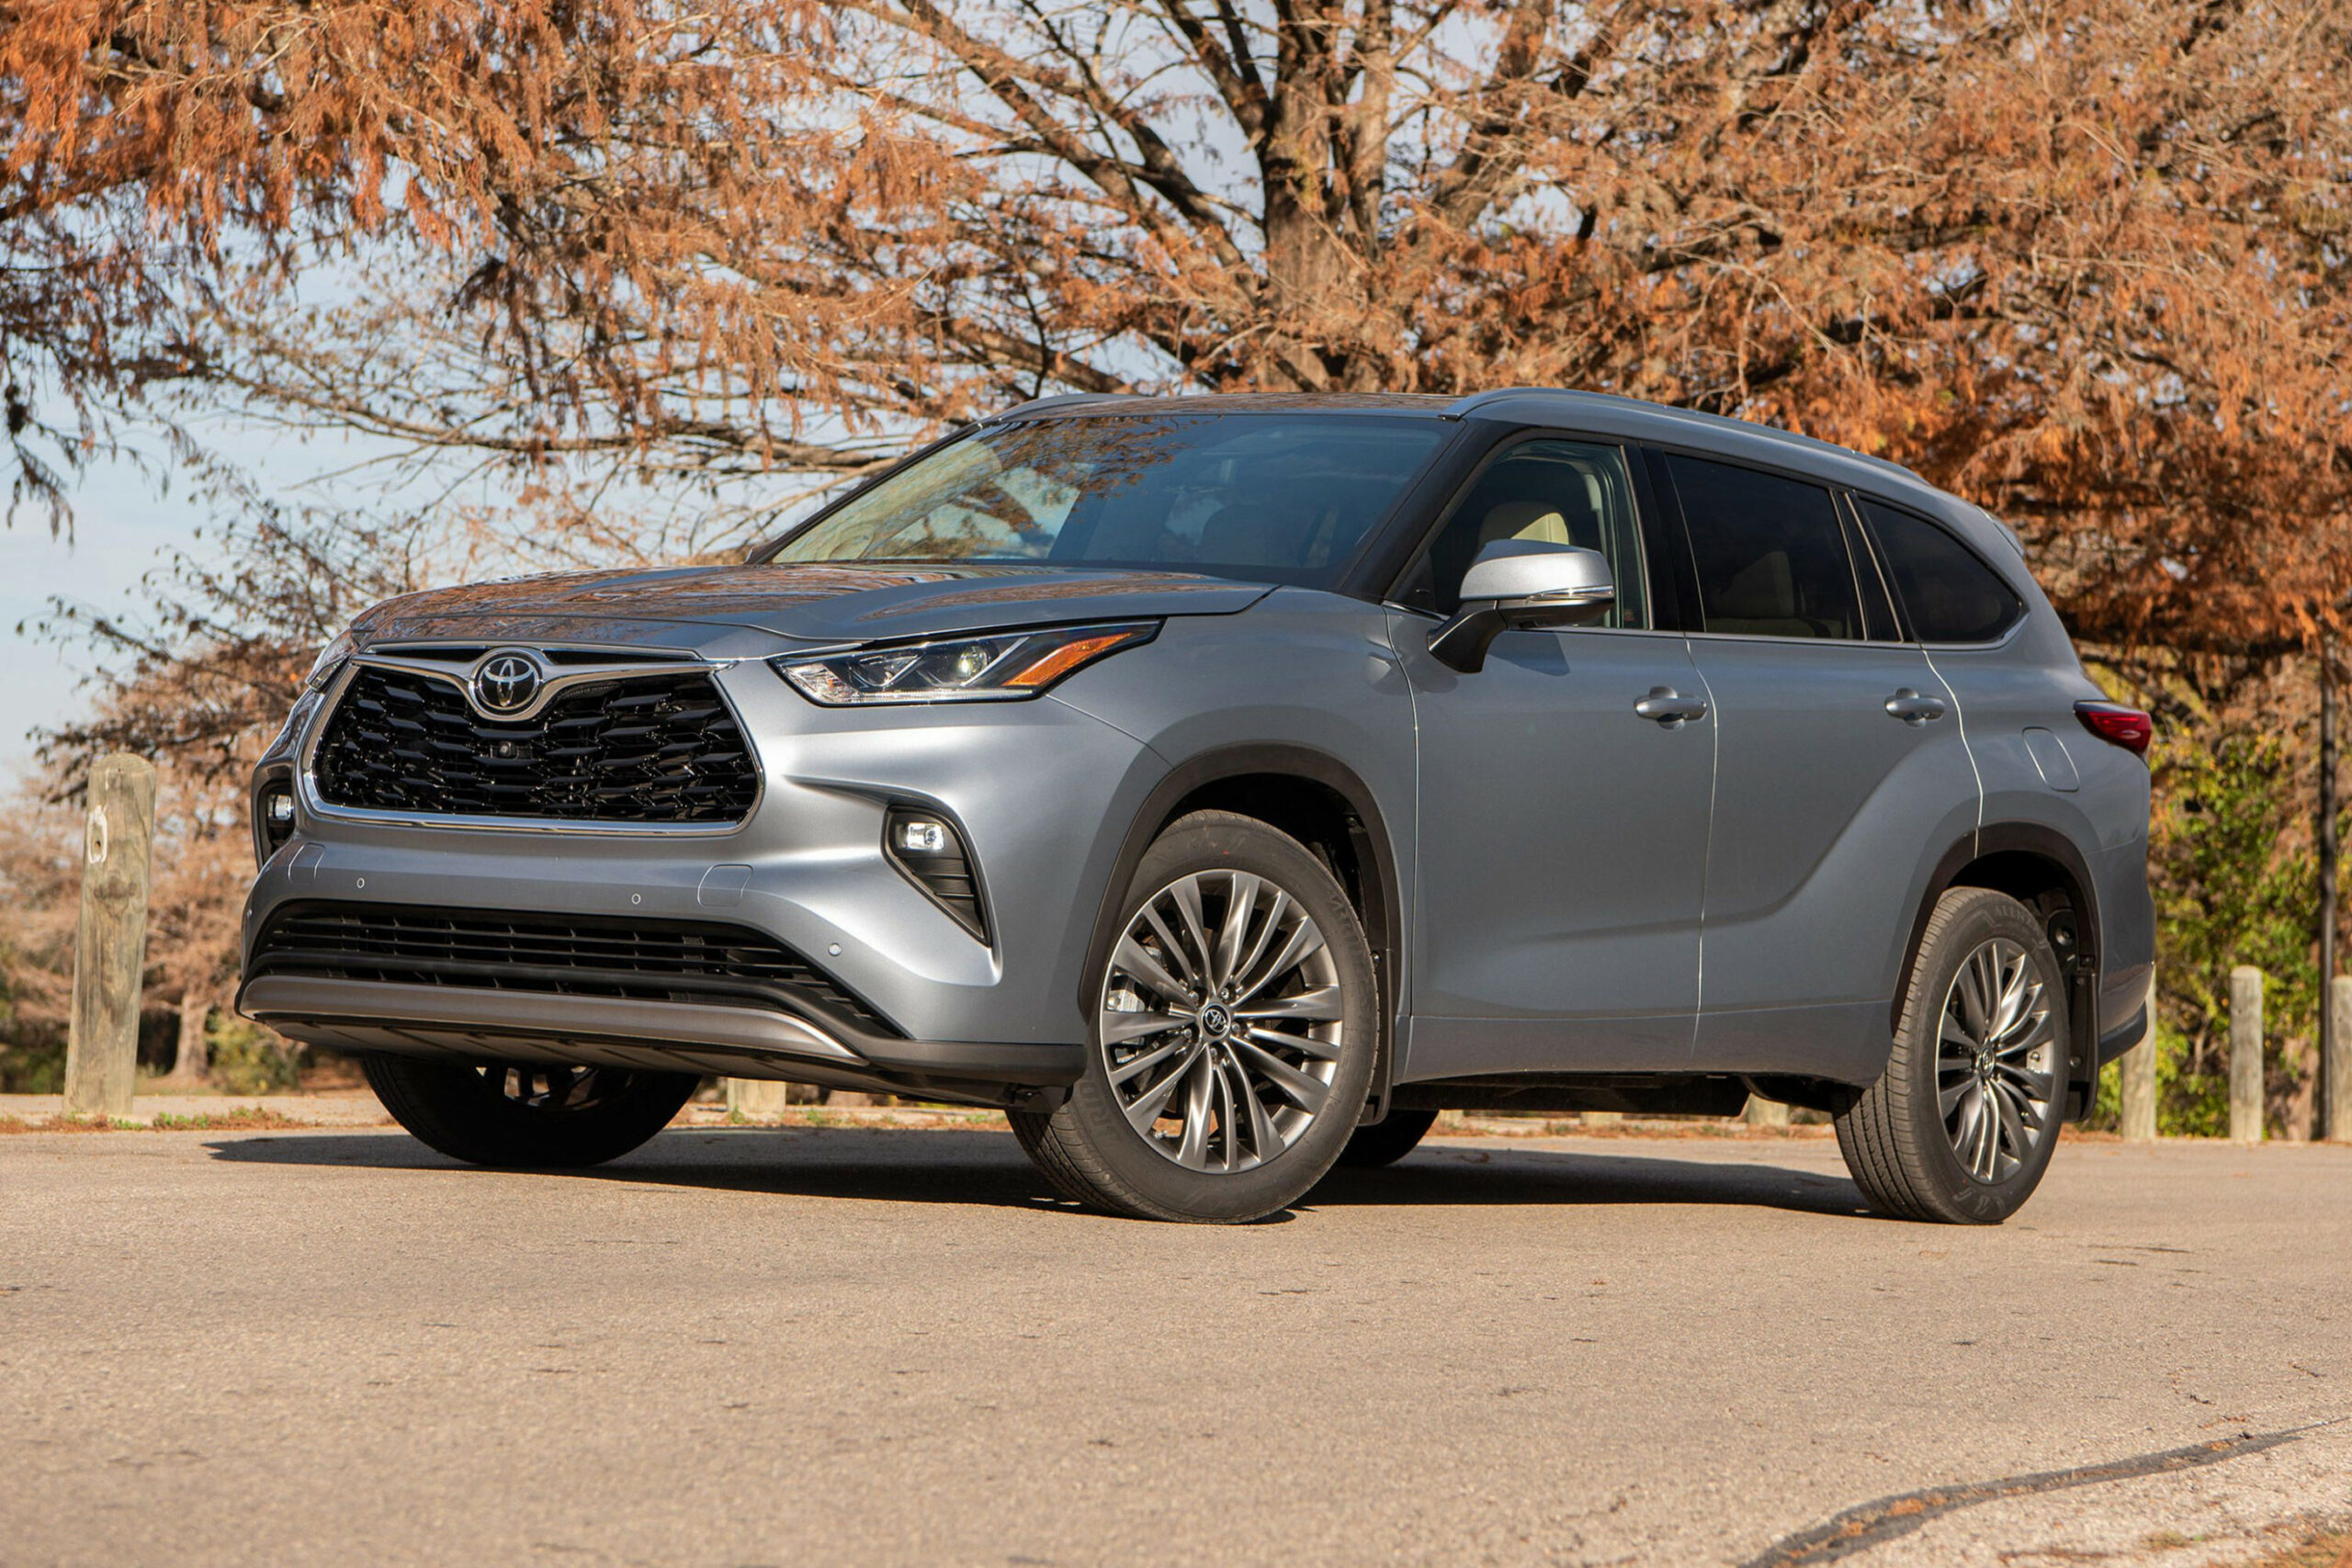 8 Toyota Highlander first drive review: It raises the bar, but ...